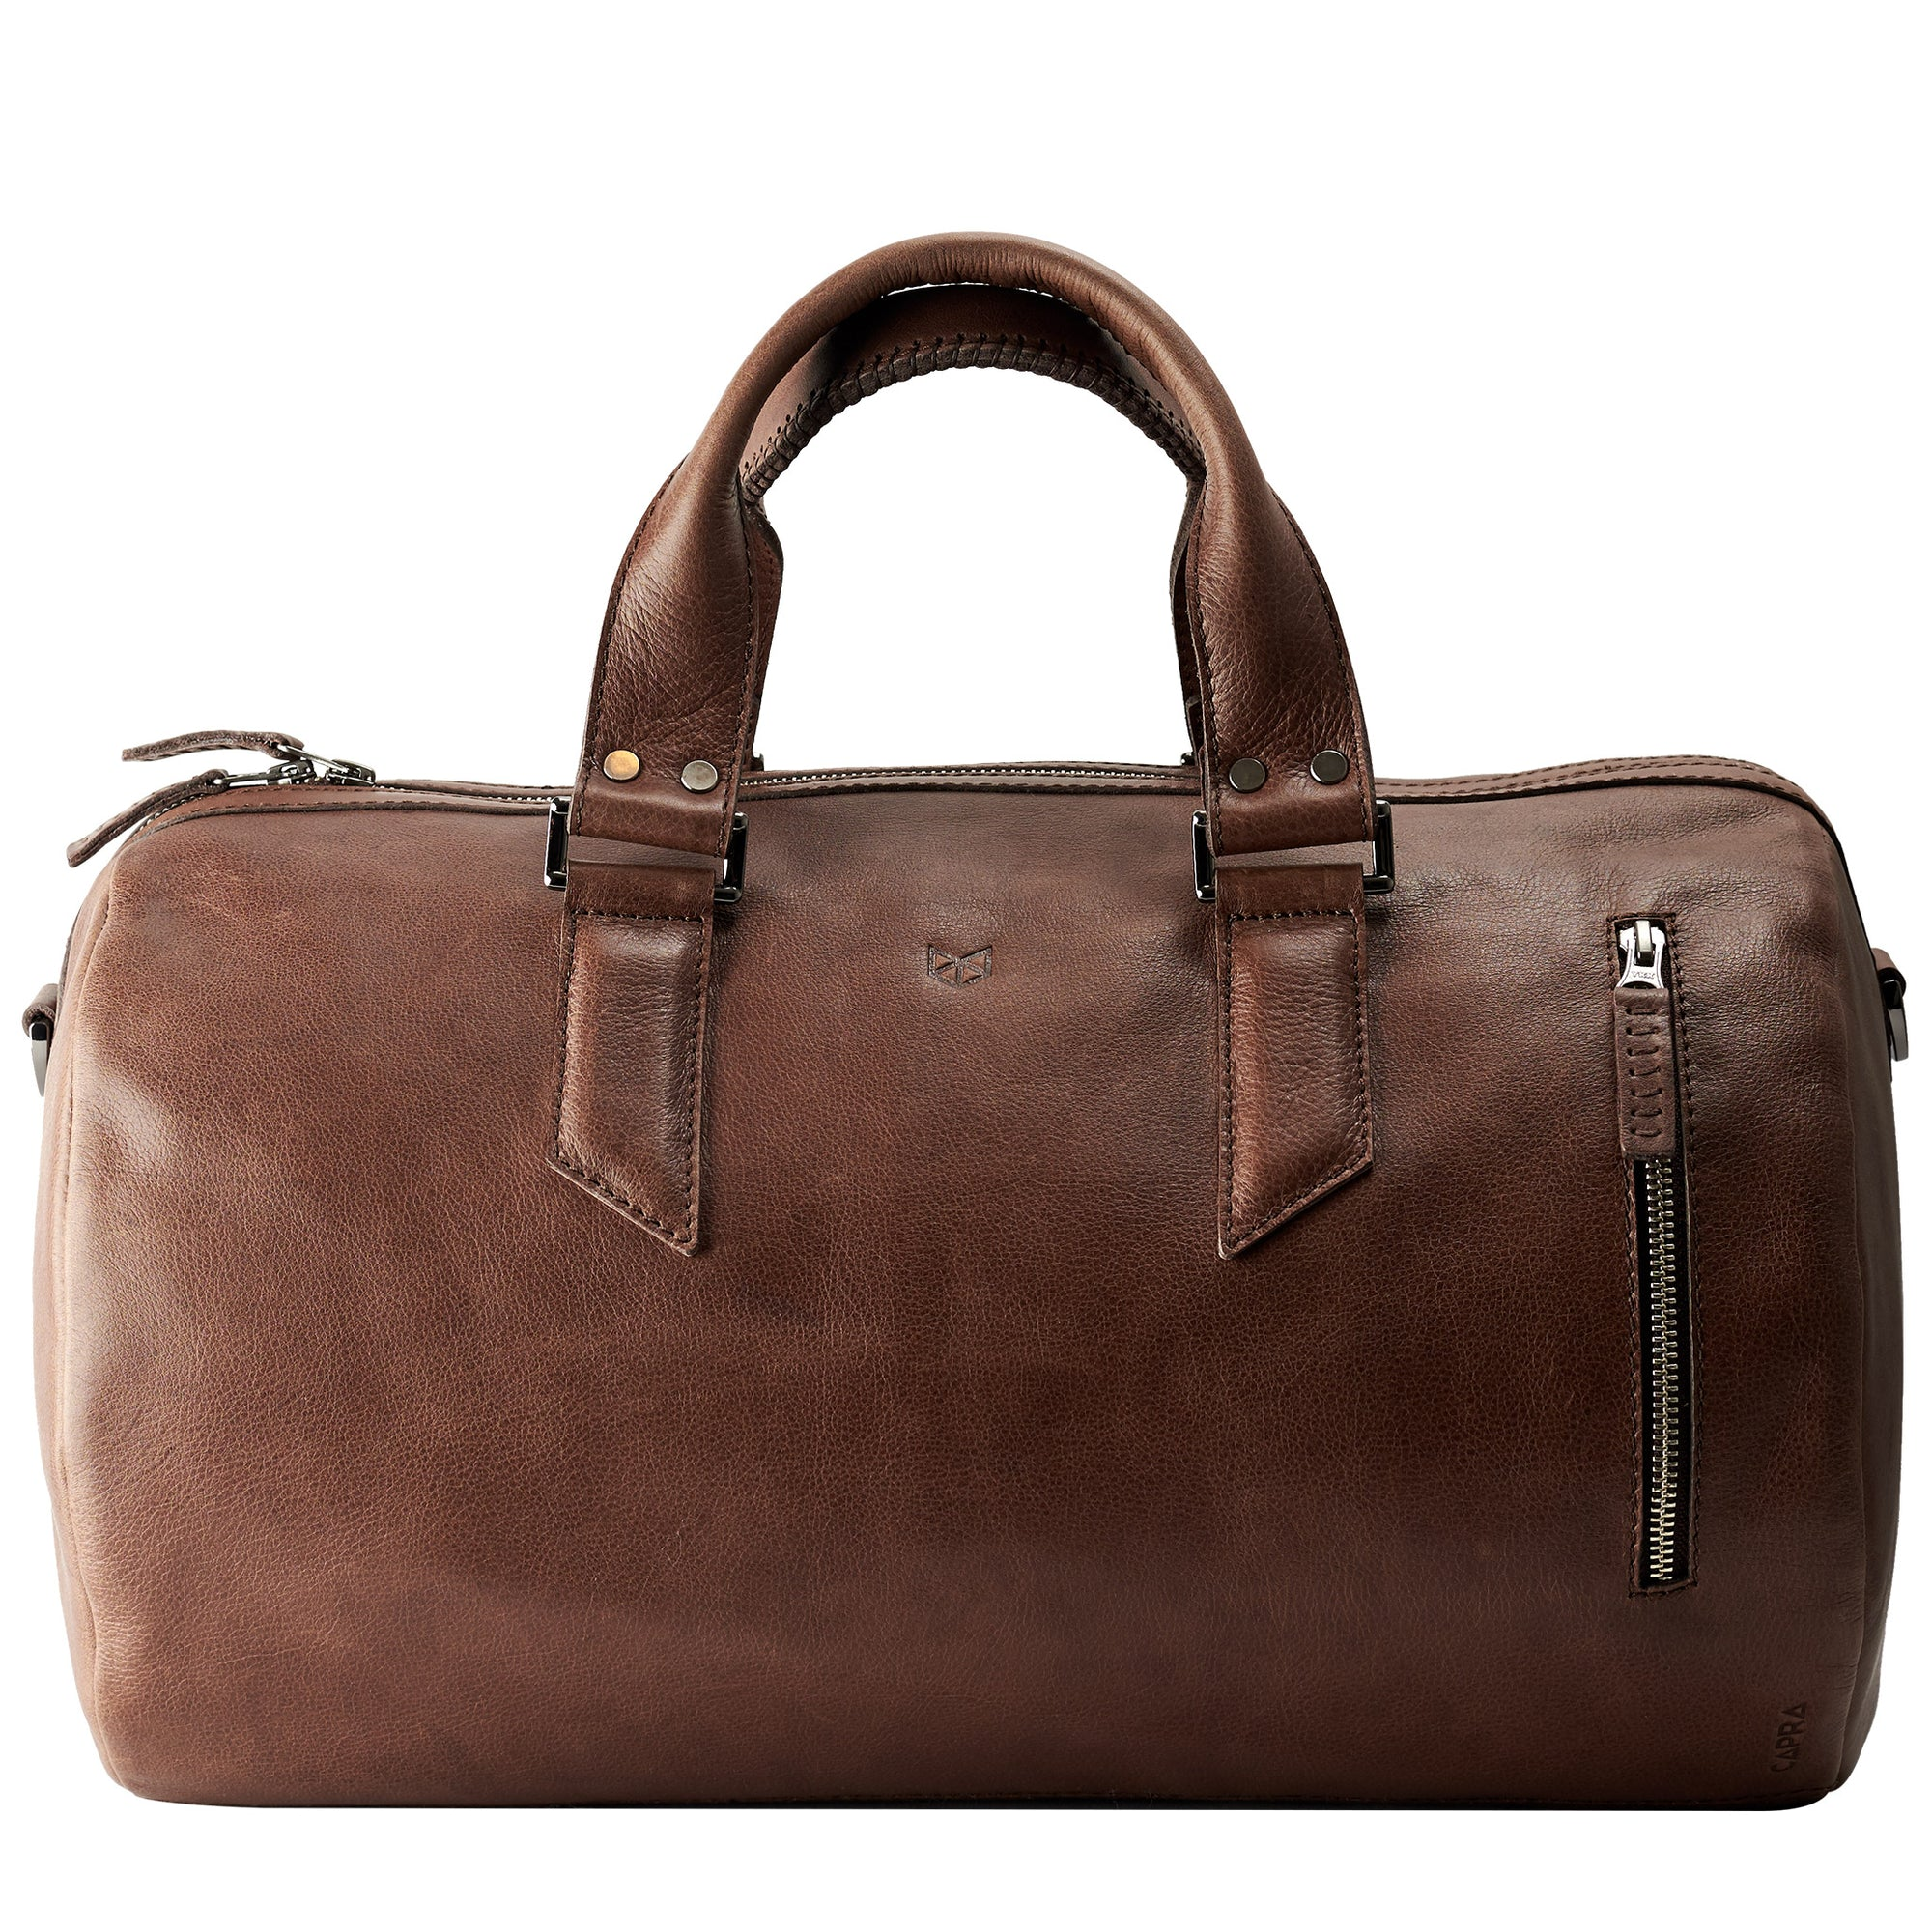 b5ce34014736 Handmade Substantial Leather Duffle Bag · Brown by Capra - Capra Leather